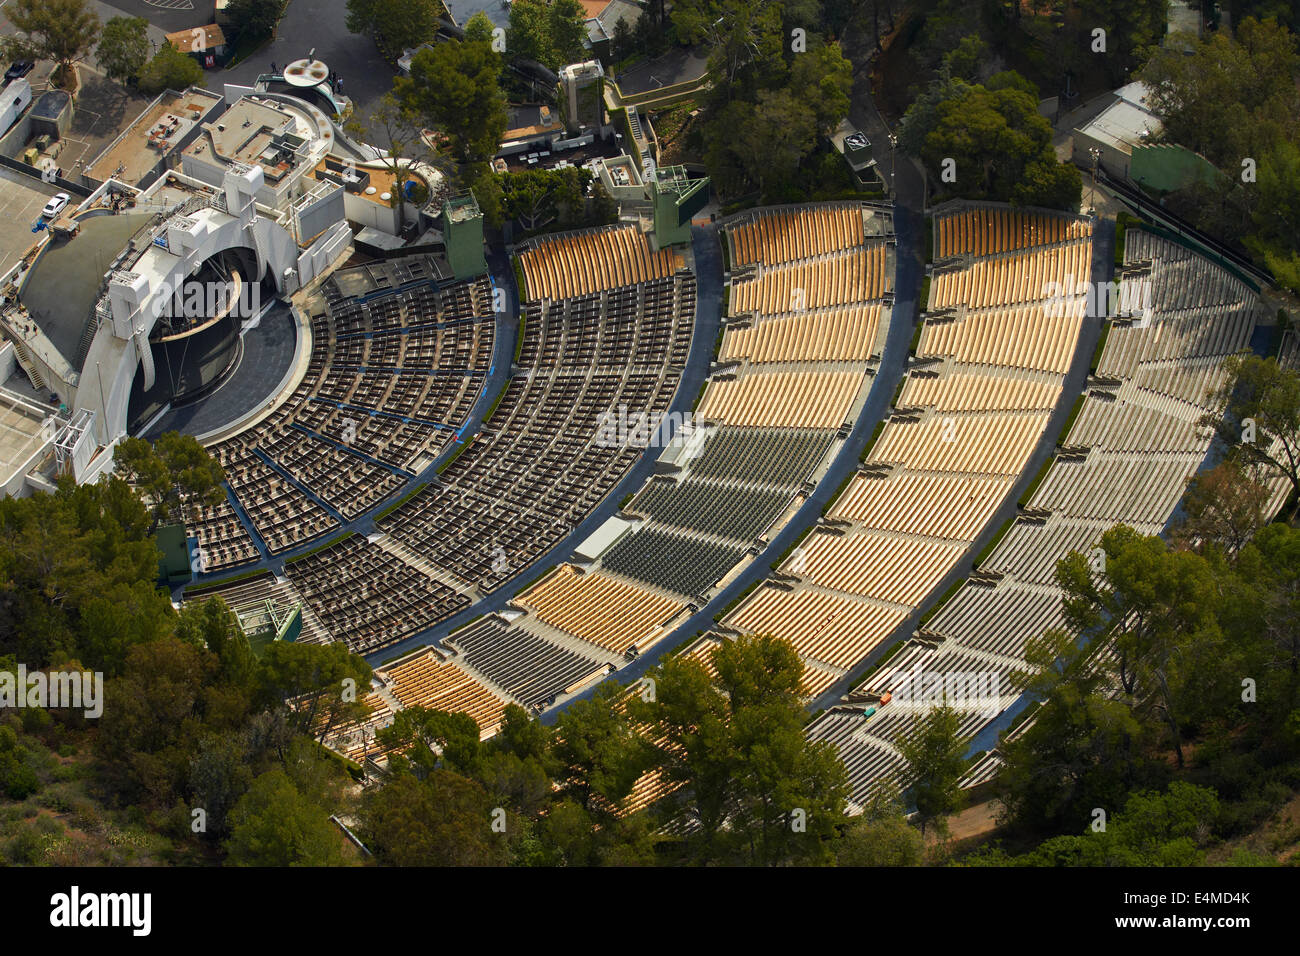 Hollywood Bowl, Hollywood, Los Ángeles, California, EE.UU. - antena Imagen De Stock